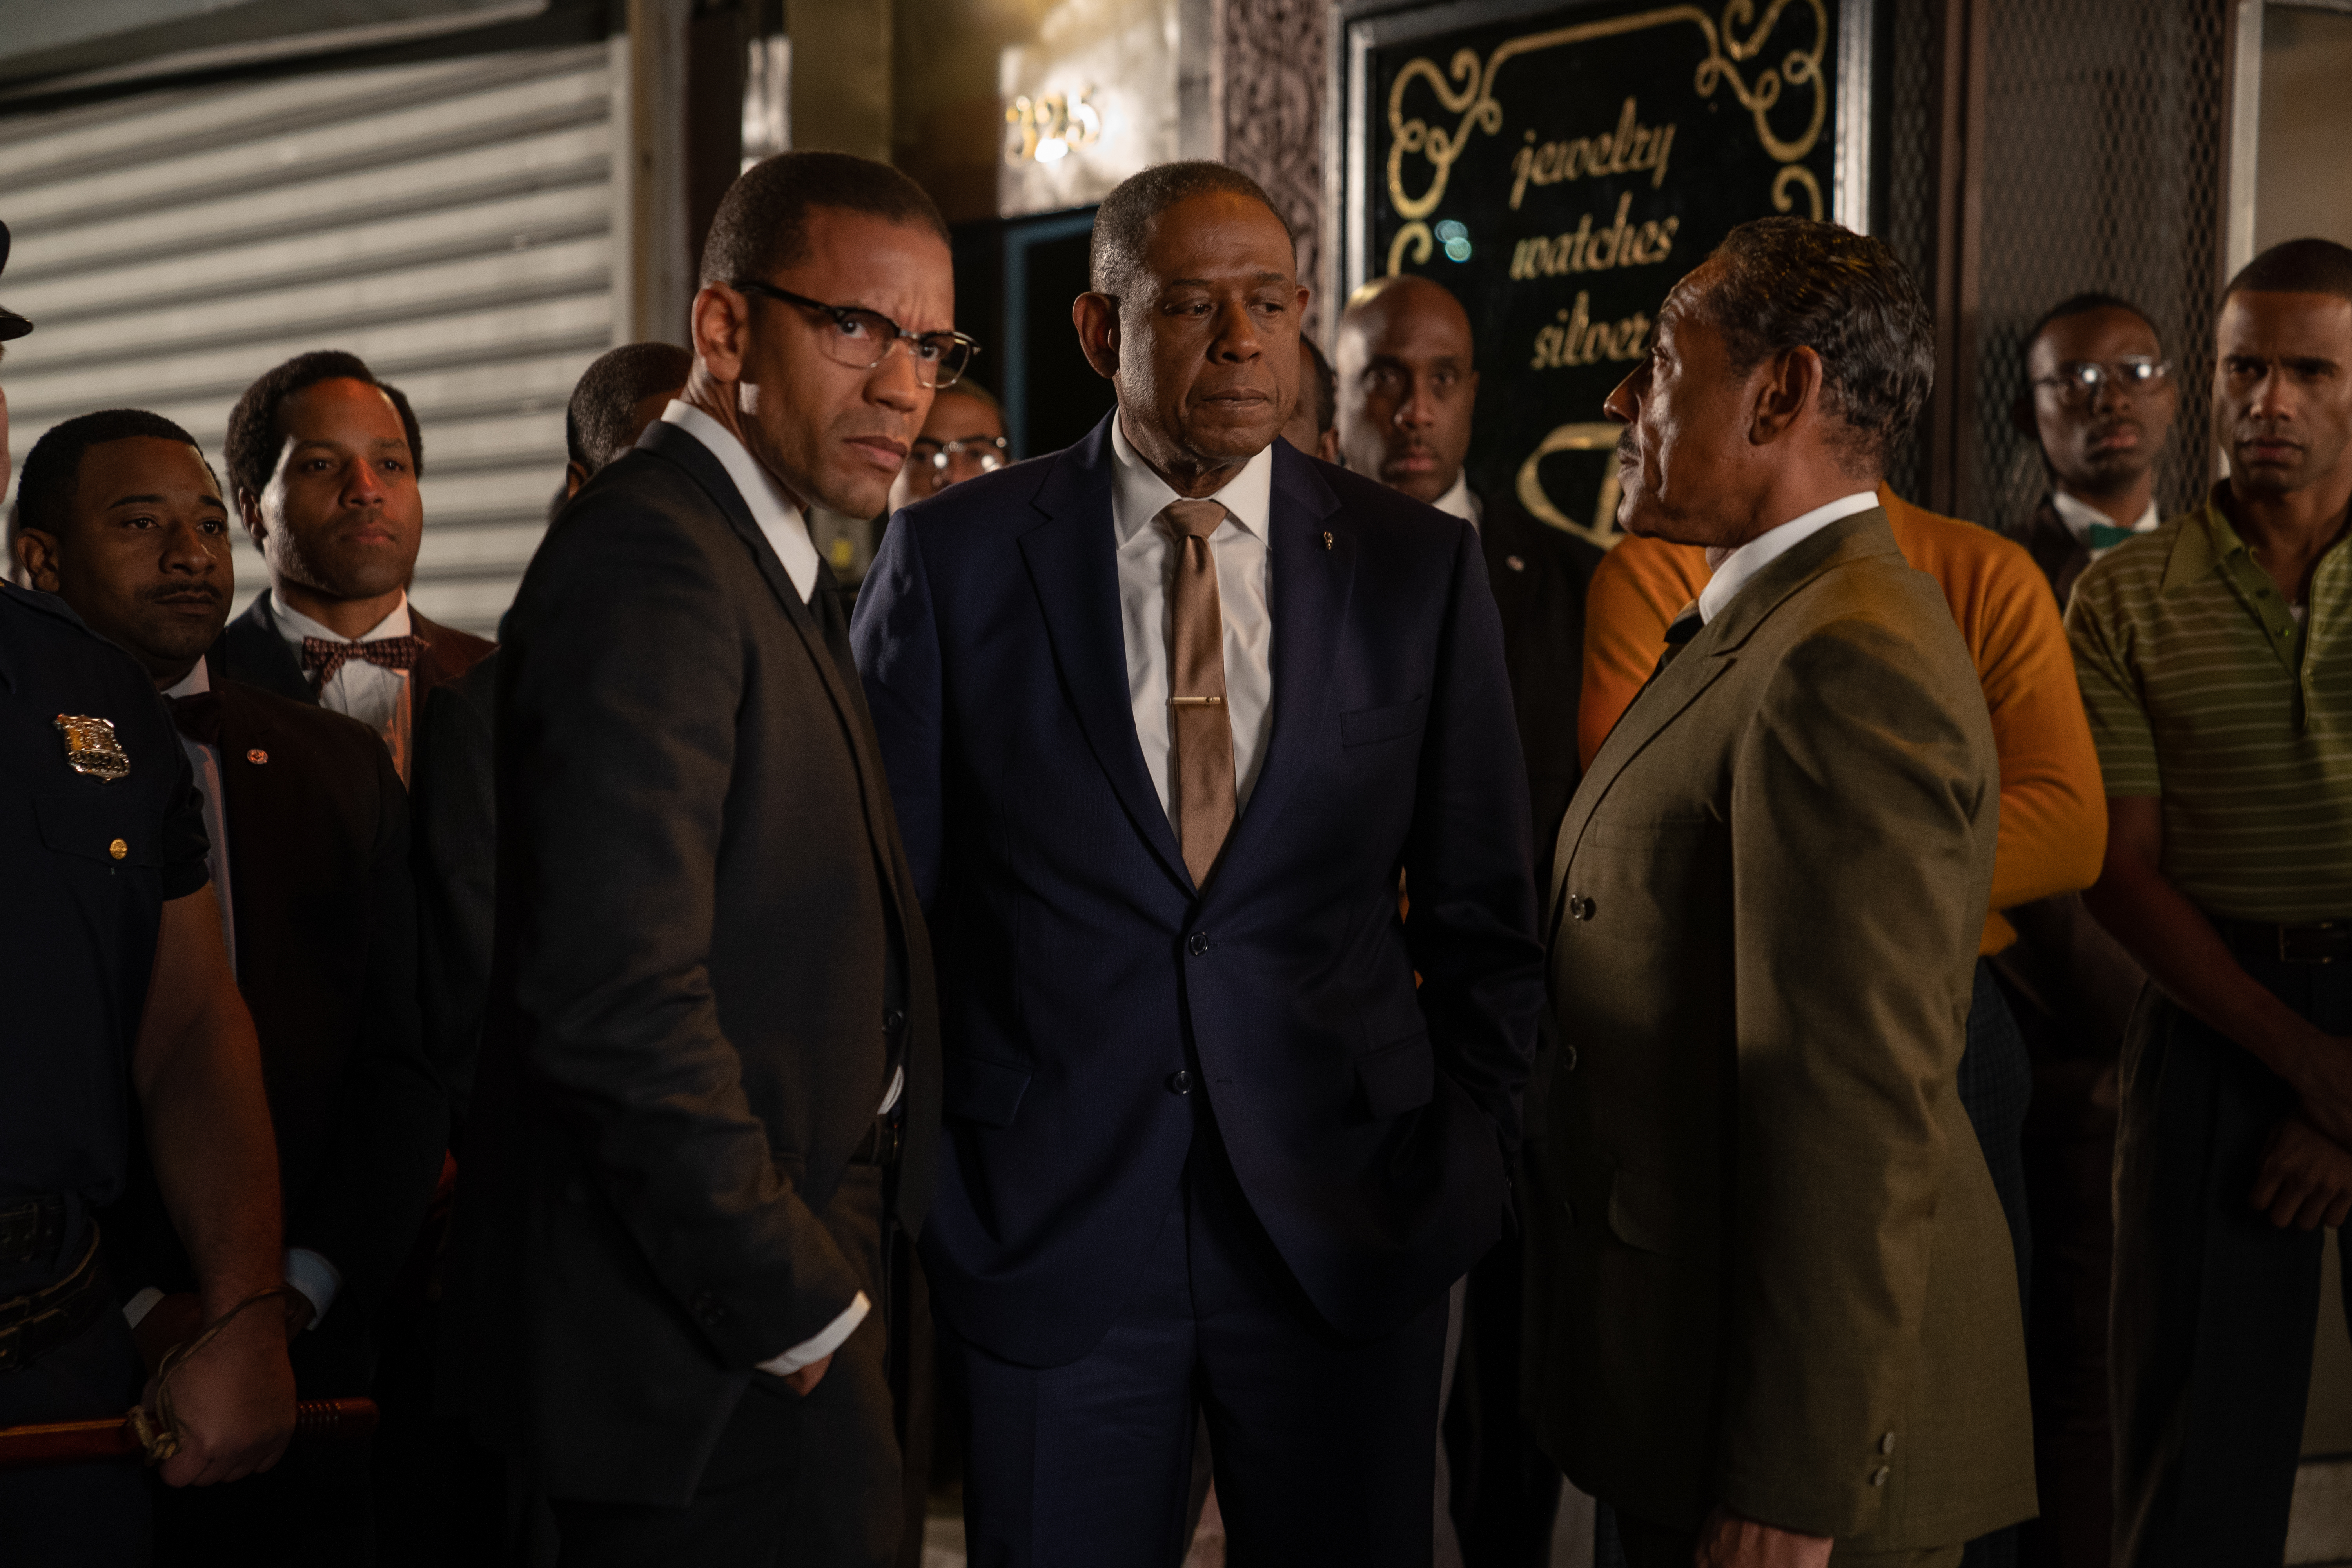 Malcolm X (Nigél Thatch),  Bumpy  Johnson (Forest Whitaker), and Rev. Adam Clayton Powell Jr. (Giancarlo Esposito) come together.